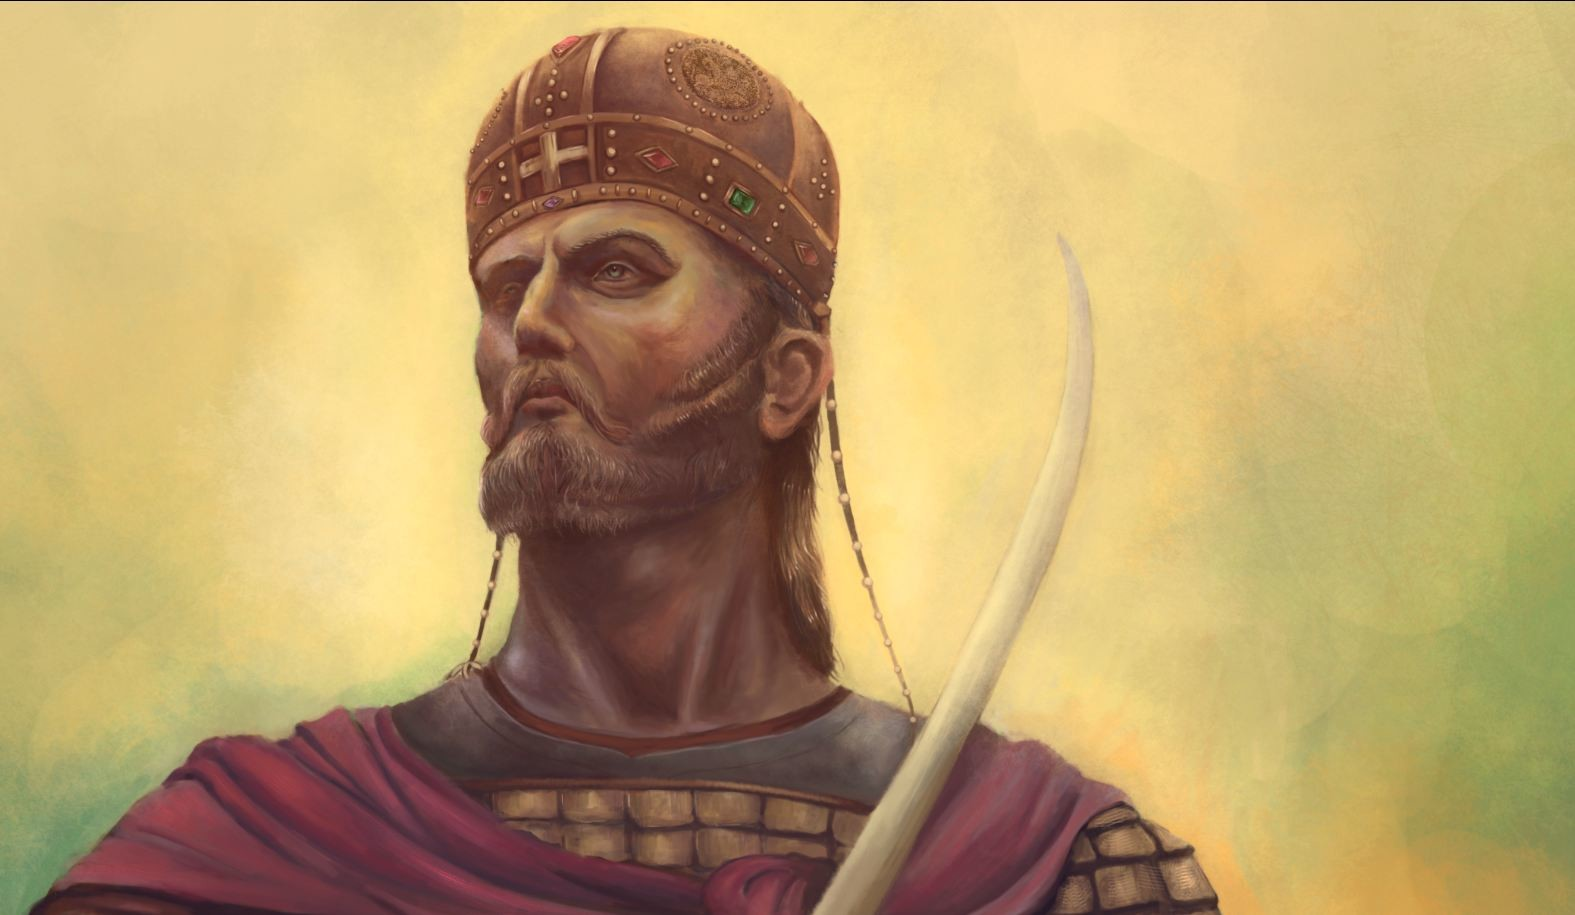 constantine muslim Constantine was the first muslim, christian, orthodox, or hindu ruler of rome - 1160236.